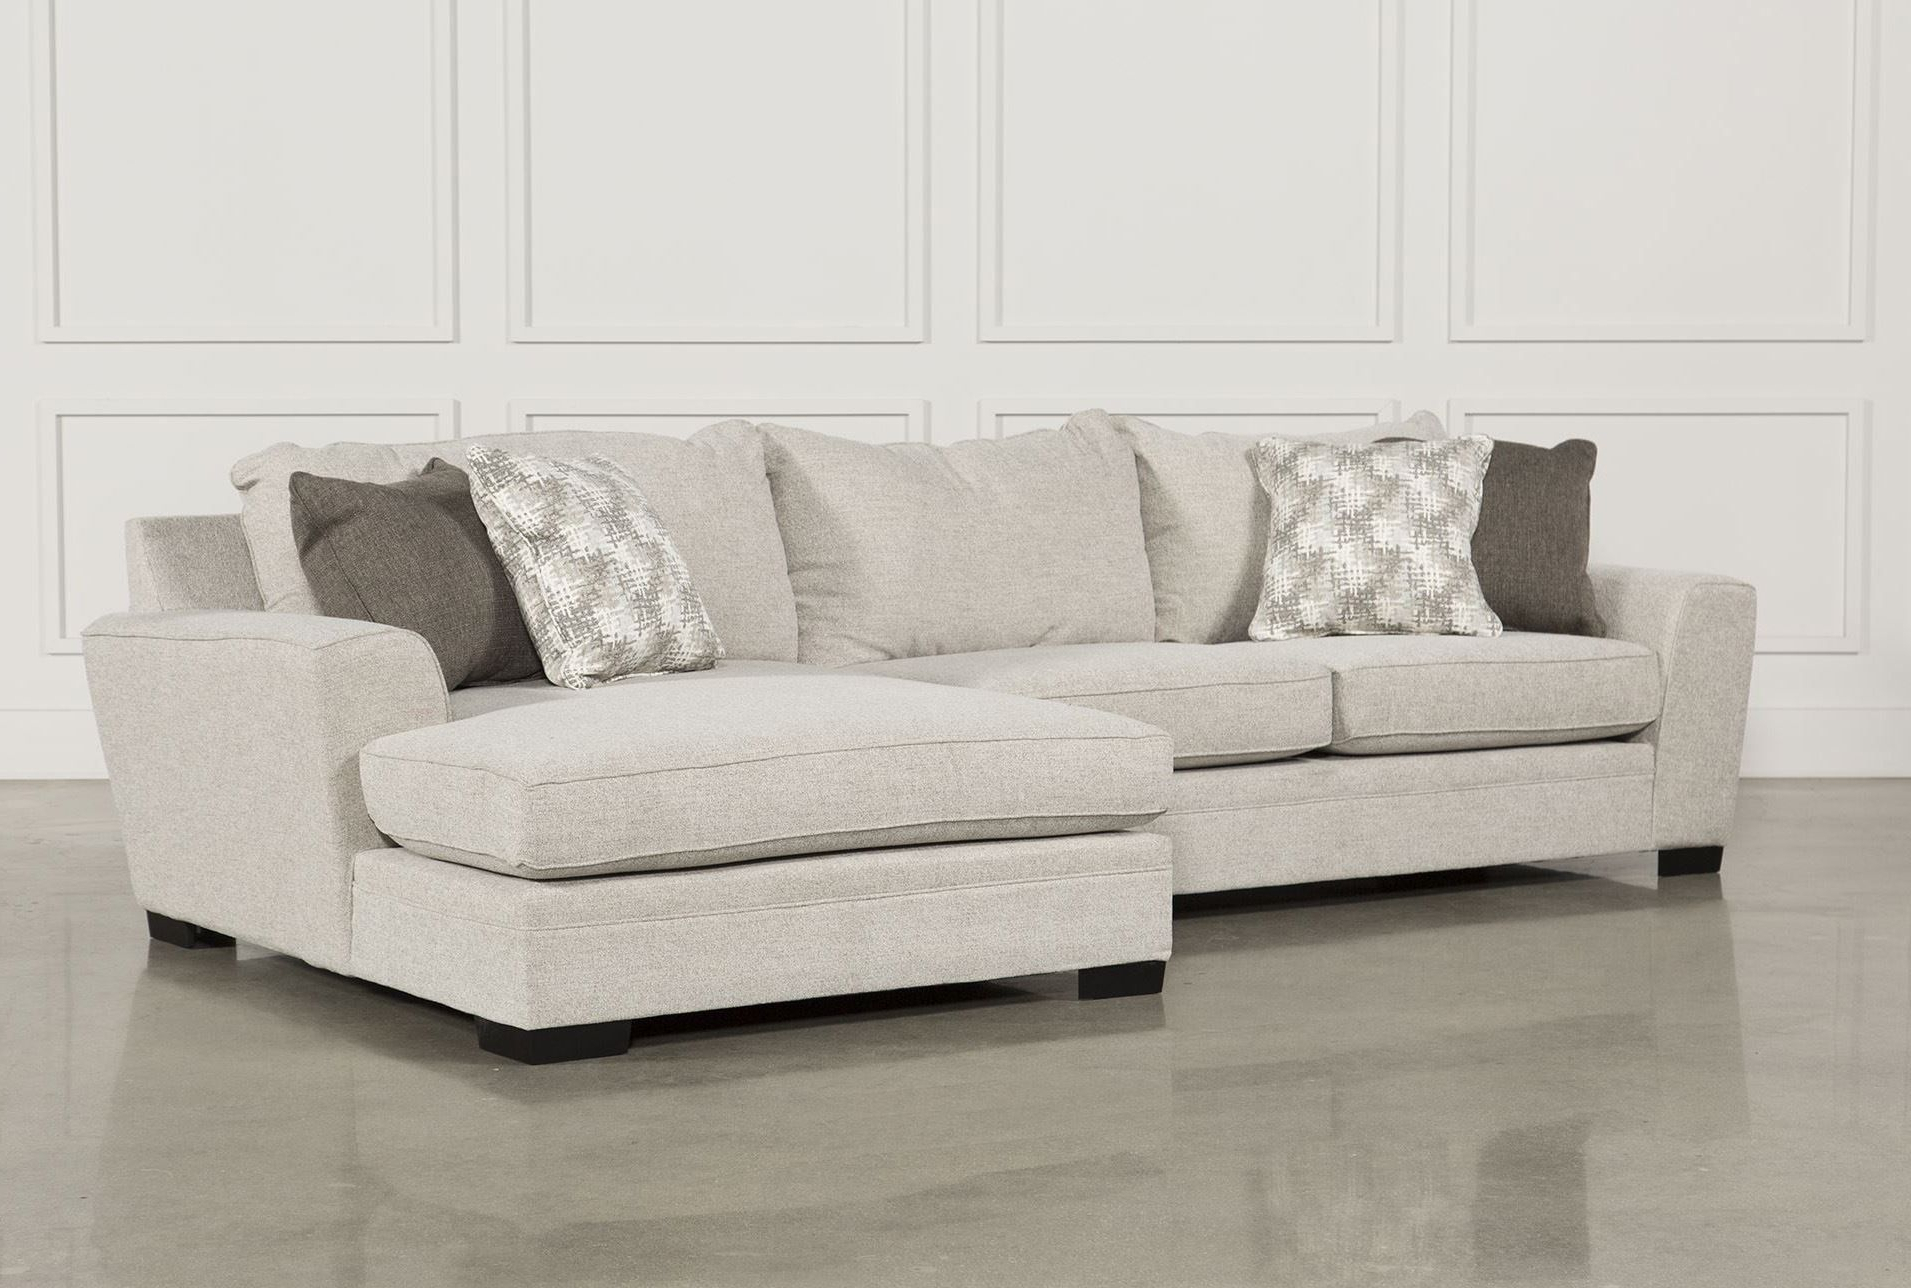 Delano 2 Piece Sectional W/raf Oversized Chaise, Beige, Sofas With Regard To 2018 Aspen 2 Piece Sectionals With Raf Chaise (View 9 of 20)